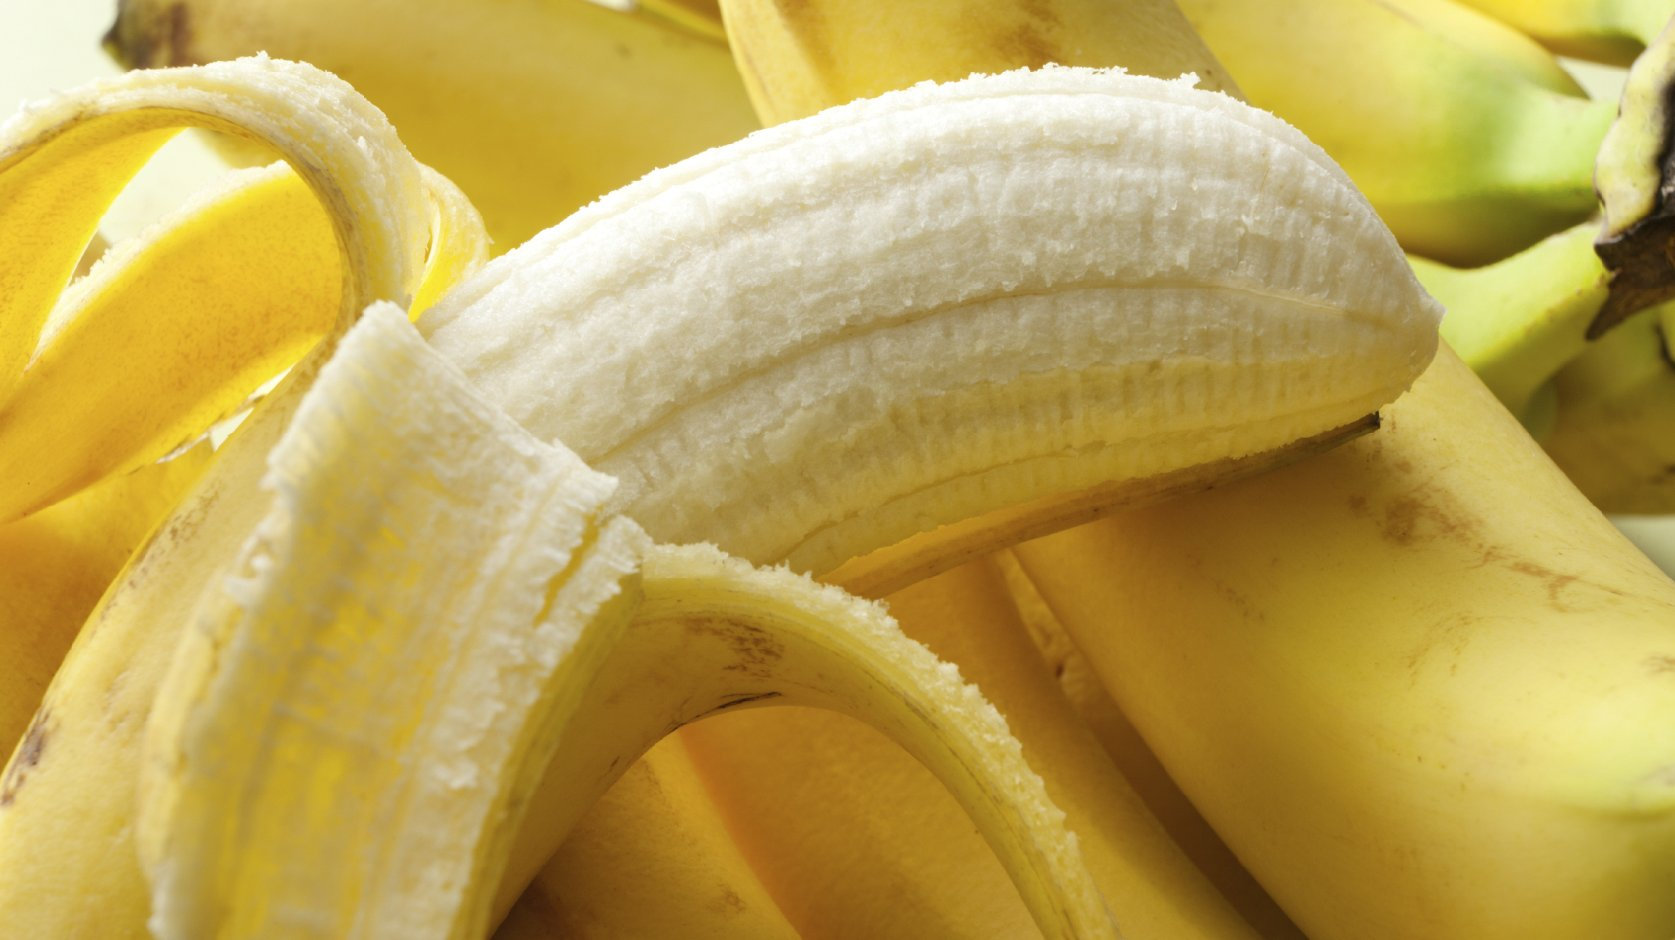 Bananas can be used in lots of recipes. Photo: iStockphoto